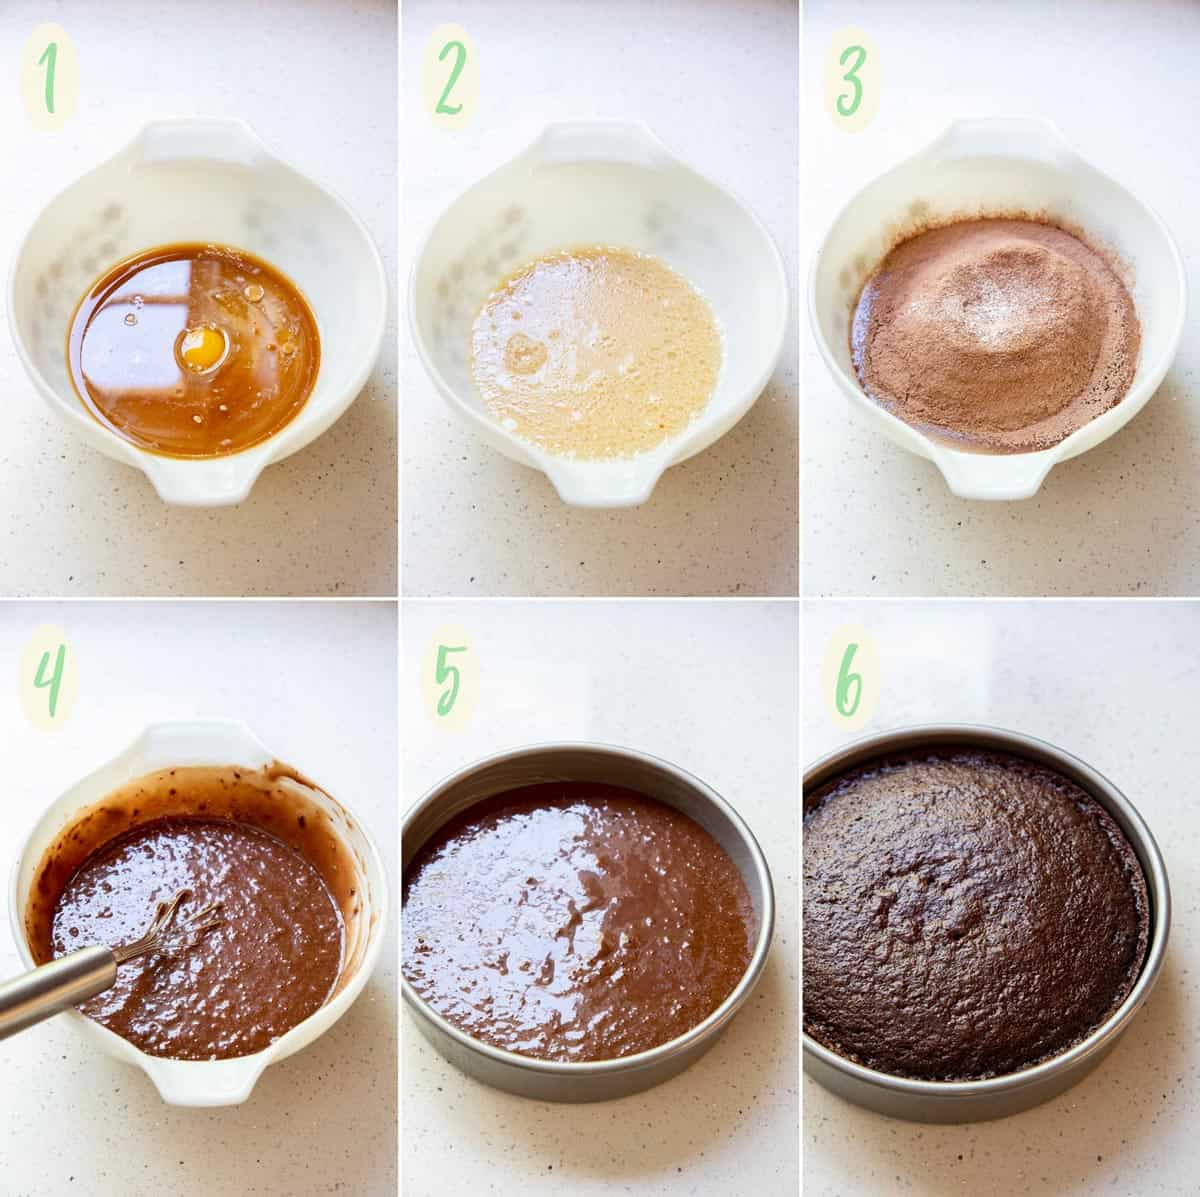 Collage of 6 photos showing how to make the chocolate cake